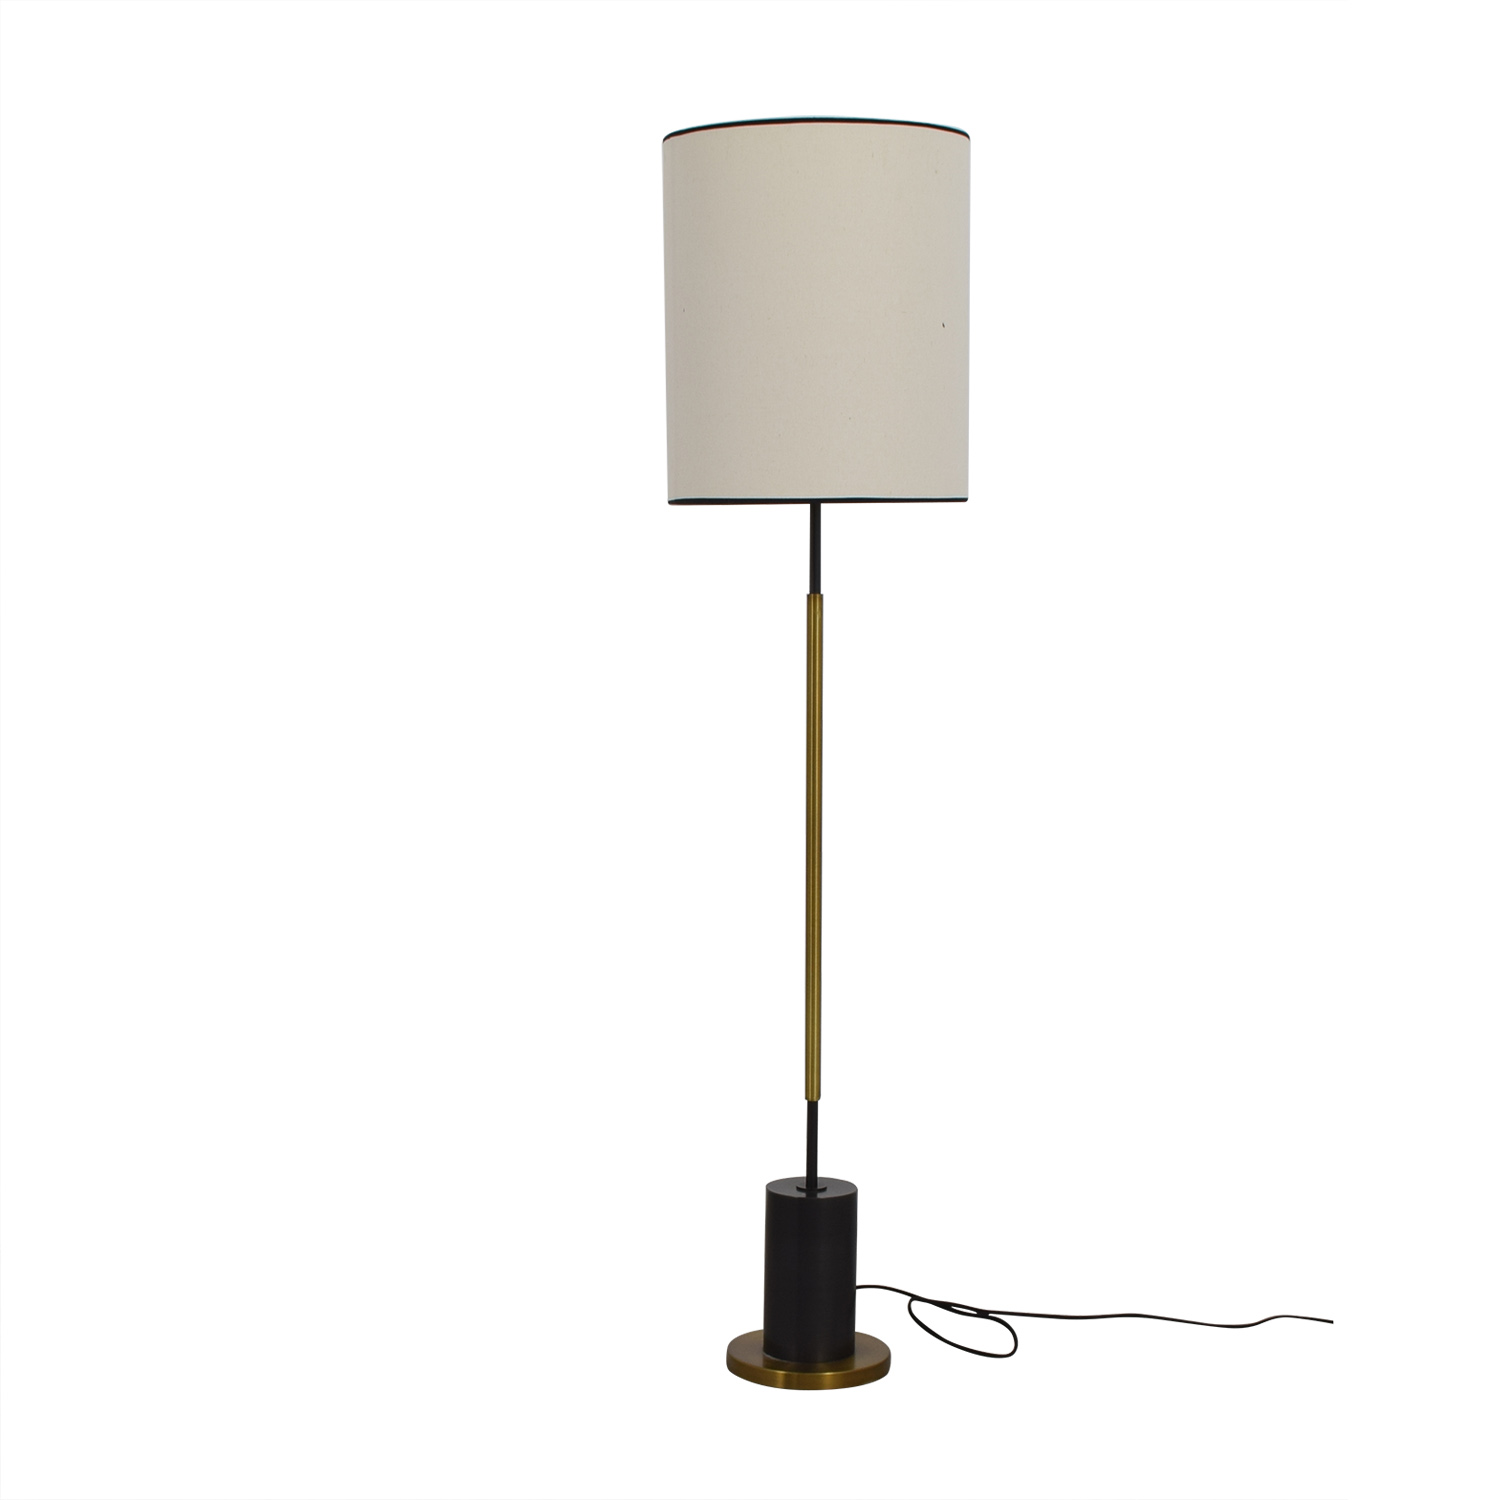 West Elm + Rejuvenation Cylinder Antique Brass and Linen Floor Lamp / Lamps